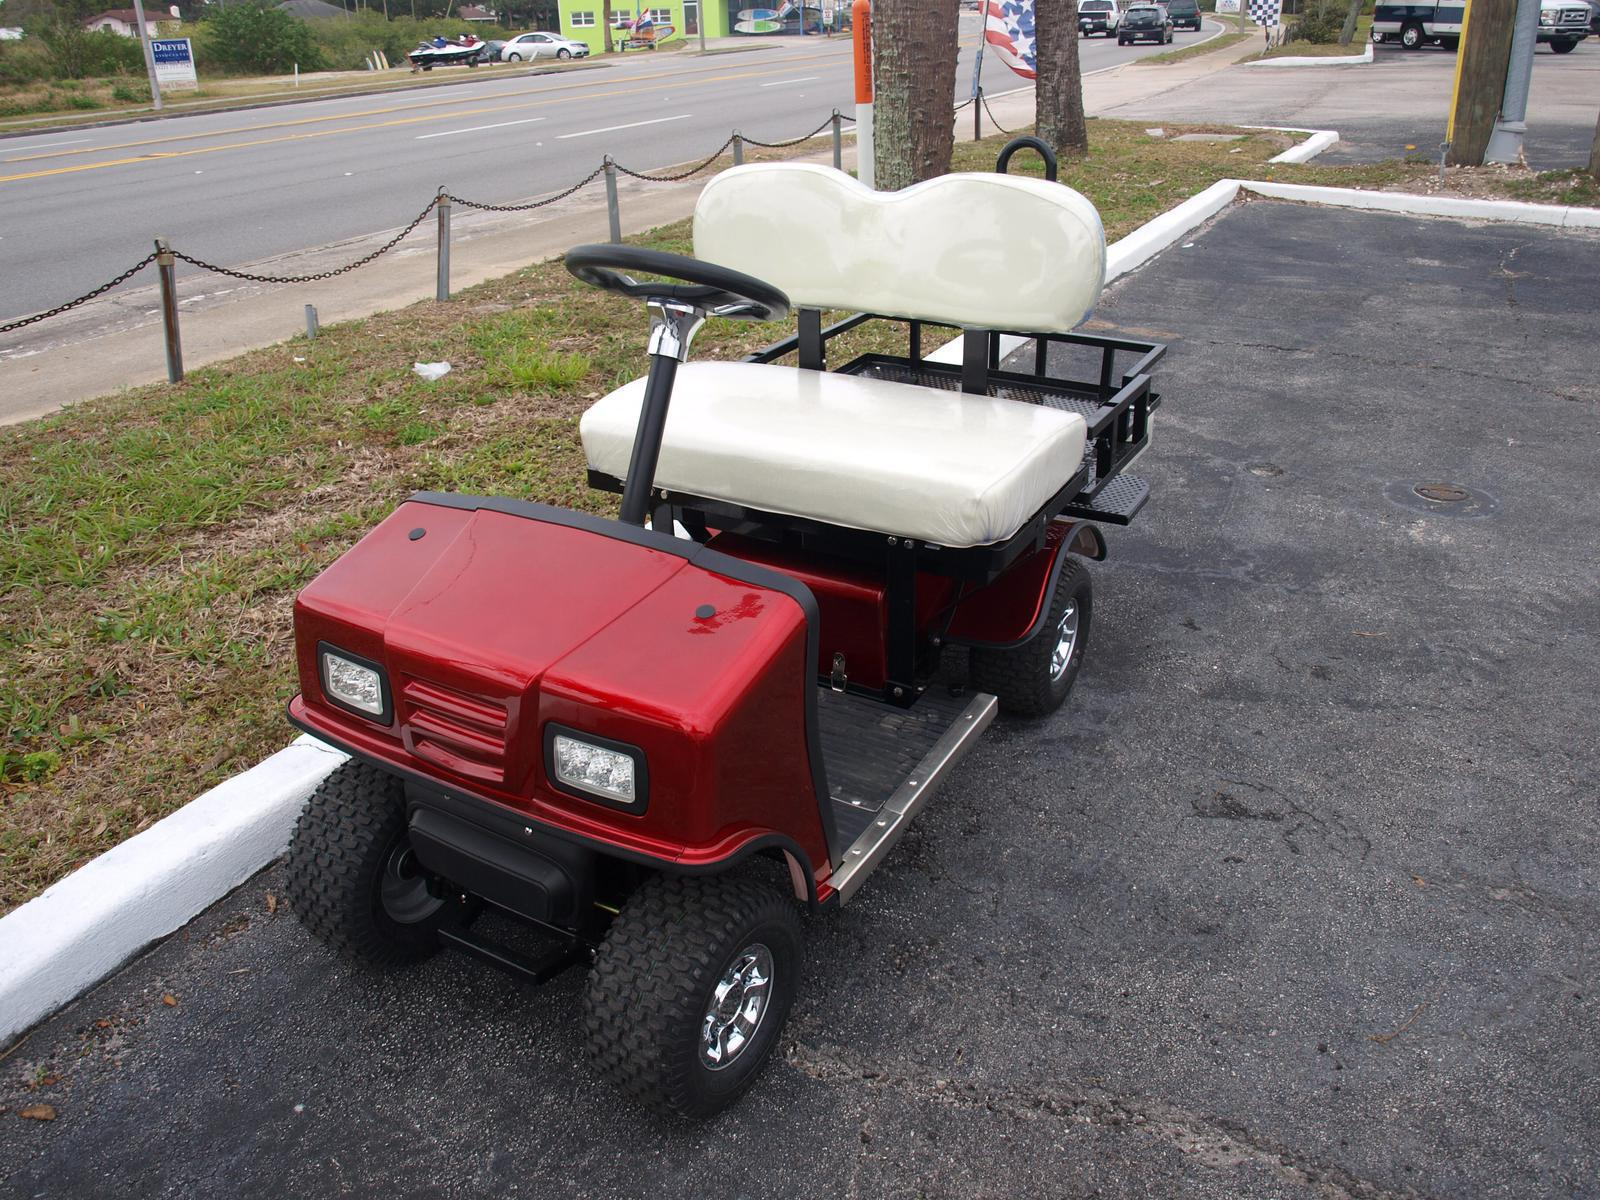 Cricket Golf Carts Sx 3 Red With White Seats